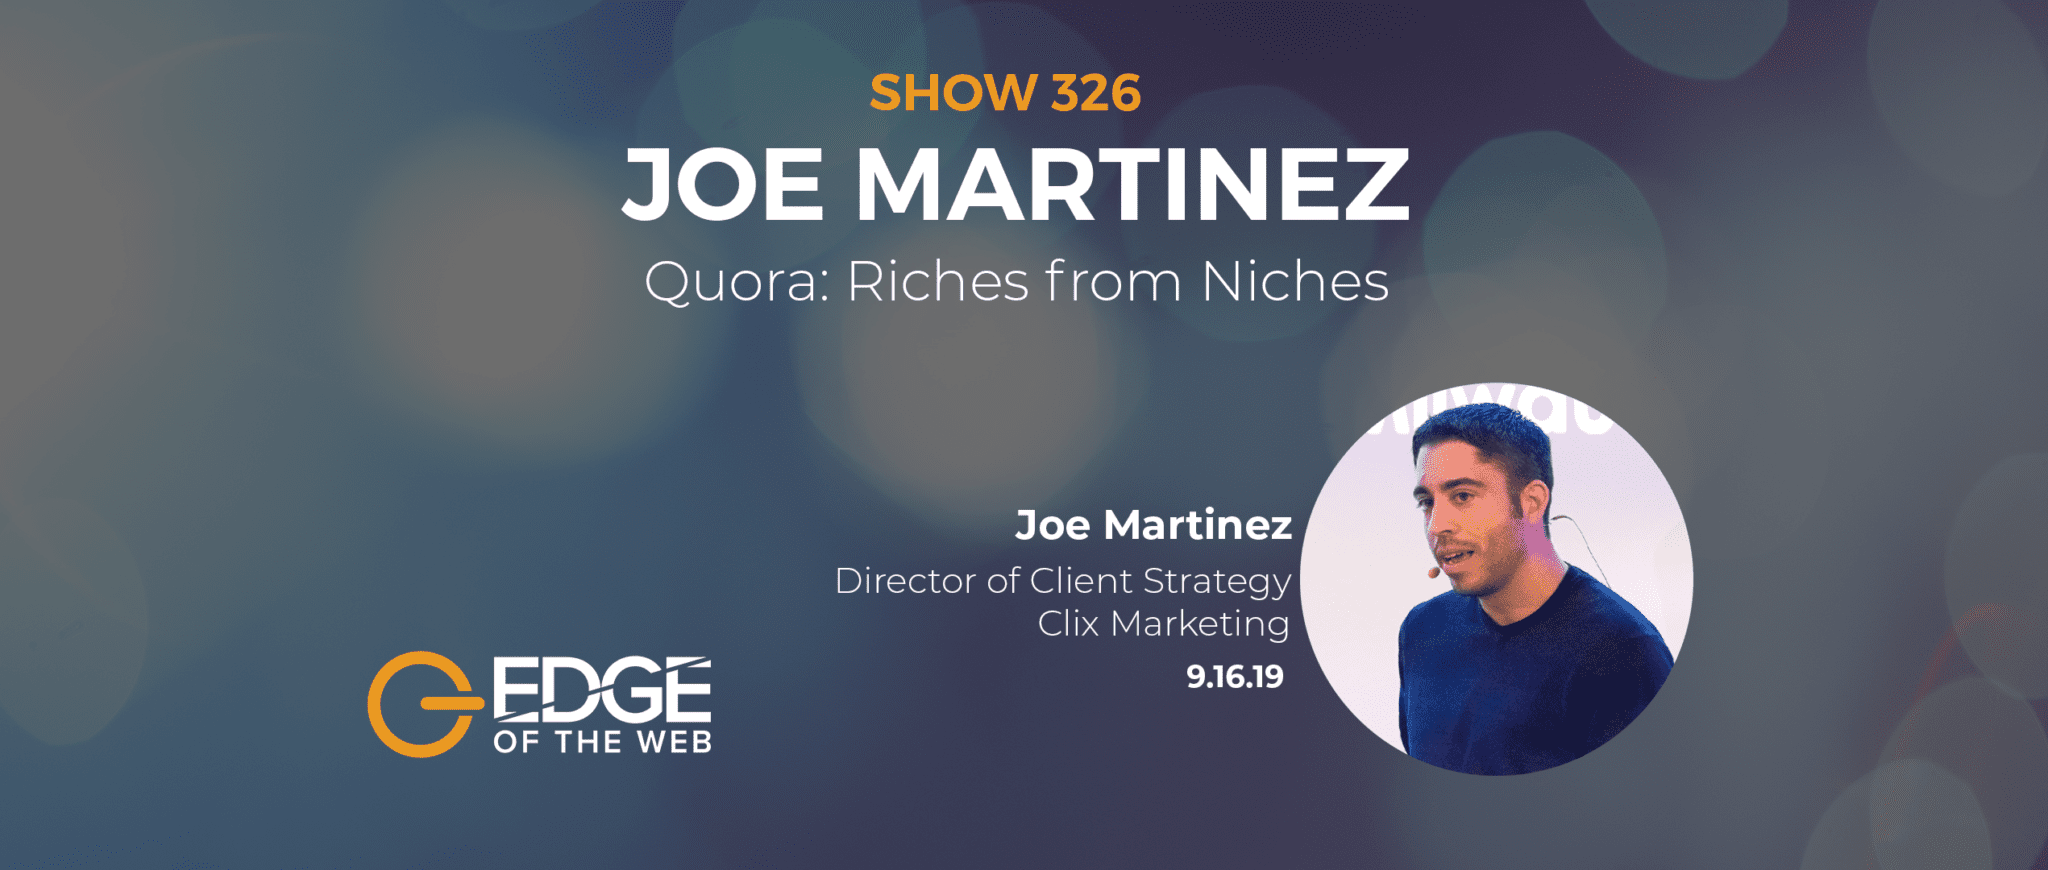 Show 326: Quora: Riches from Niches, featuring Joe Martinez